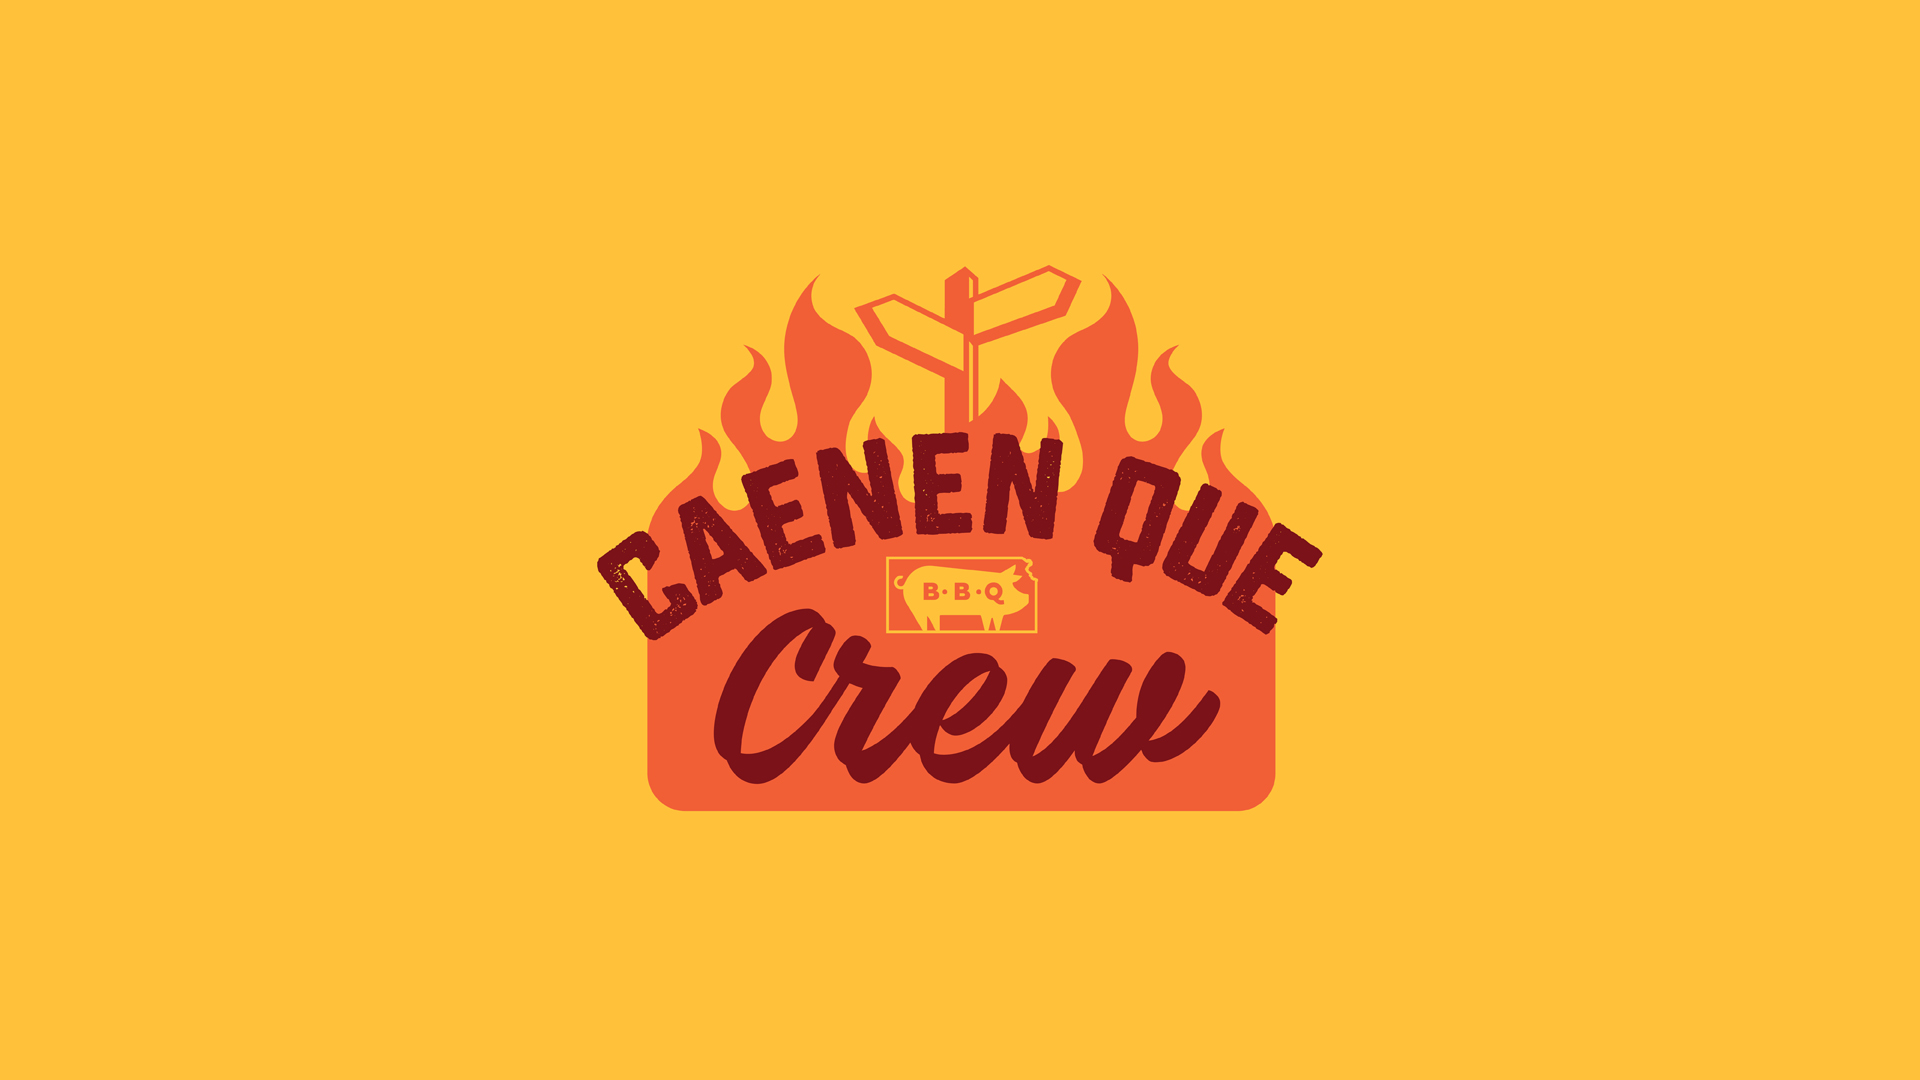 CaenenQueCrew_Final-01.jpg